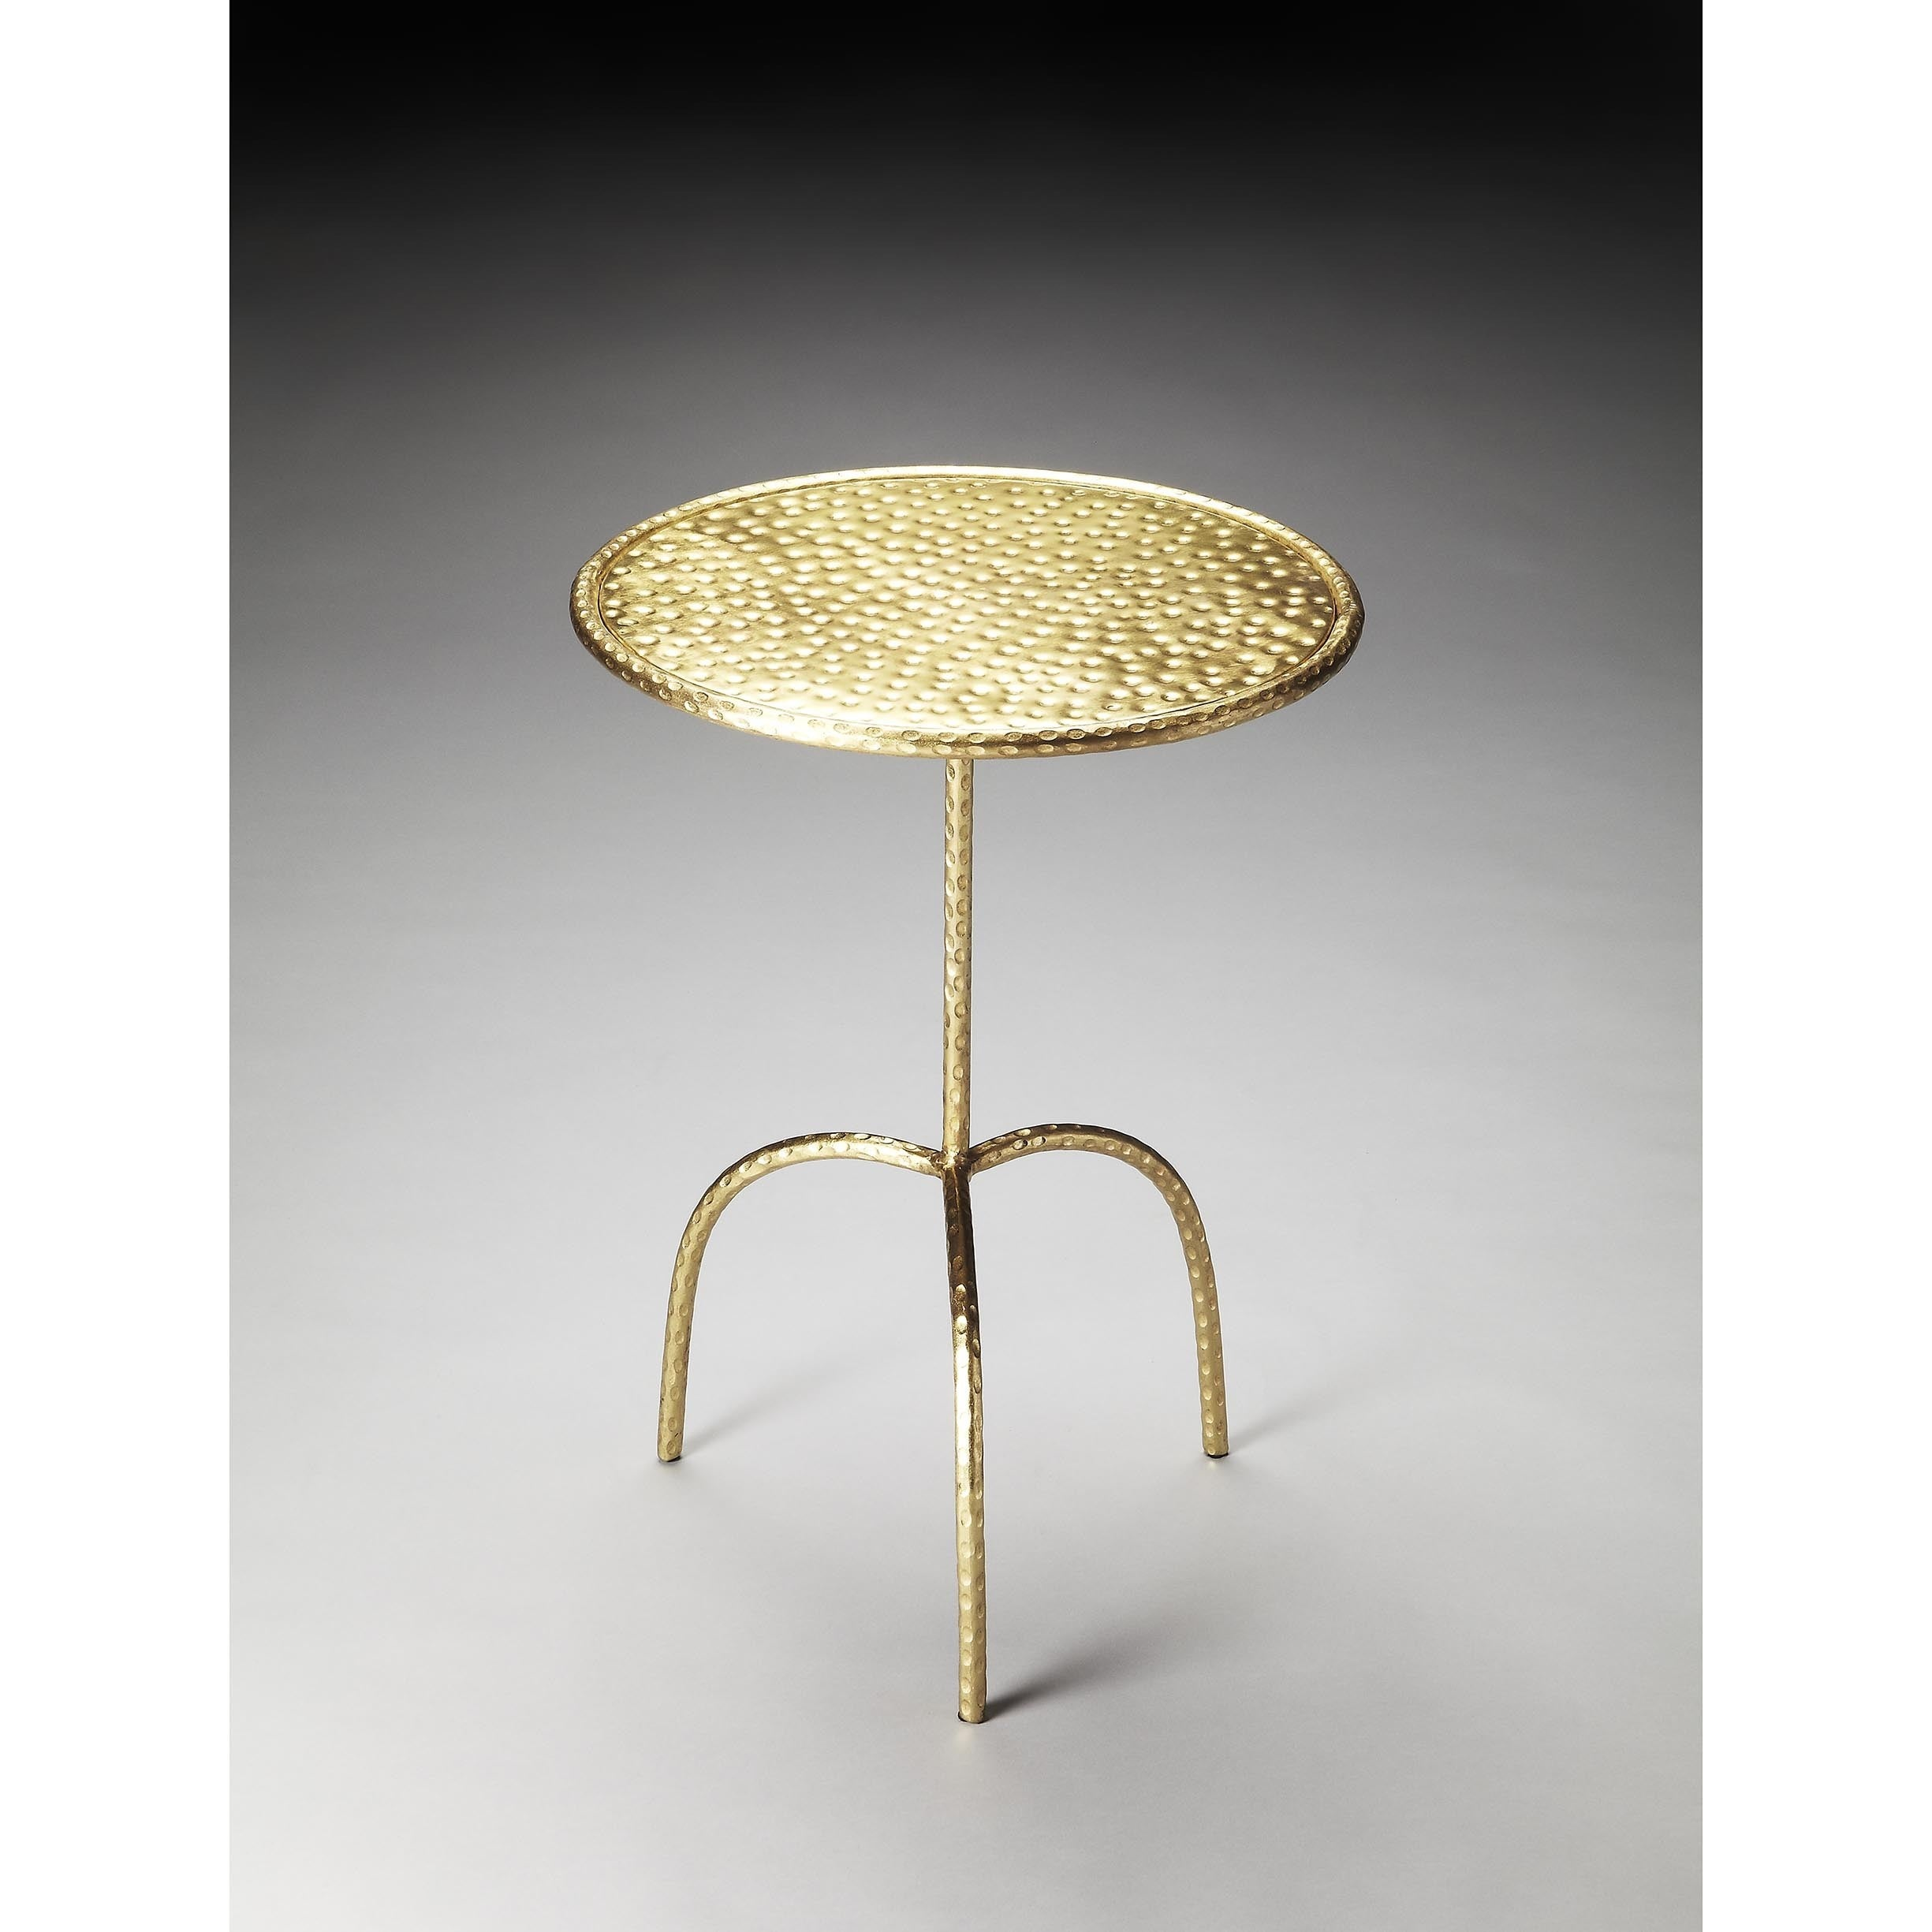 Butler Founders Brass-finish Pedestal Table (Gold), Yellow